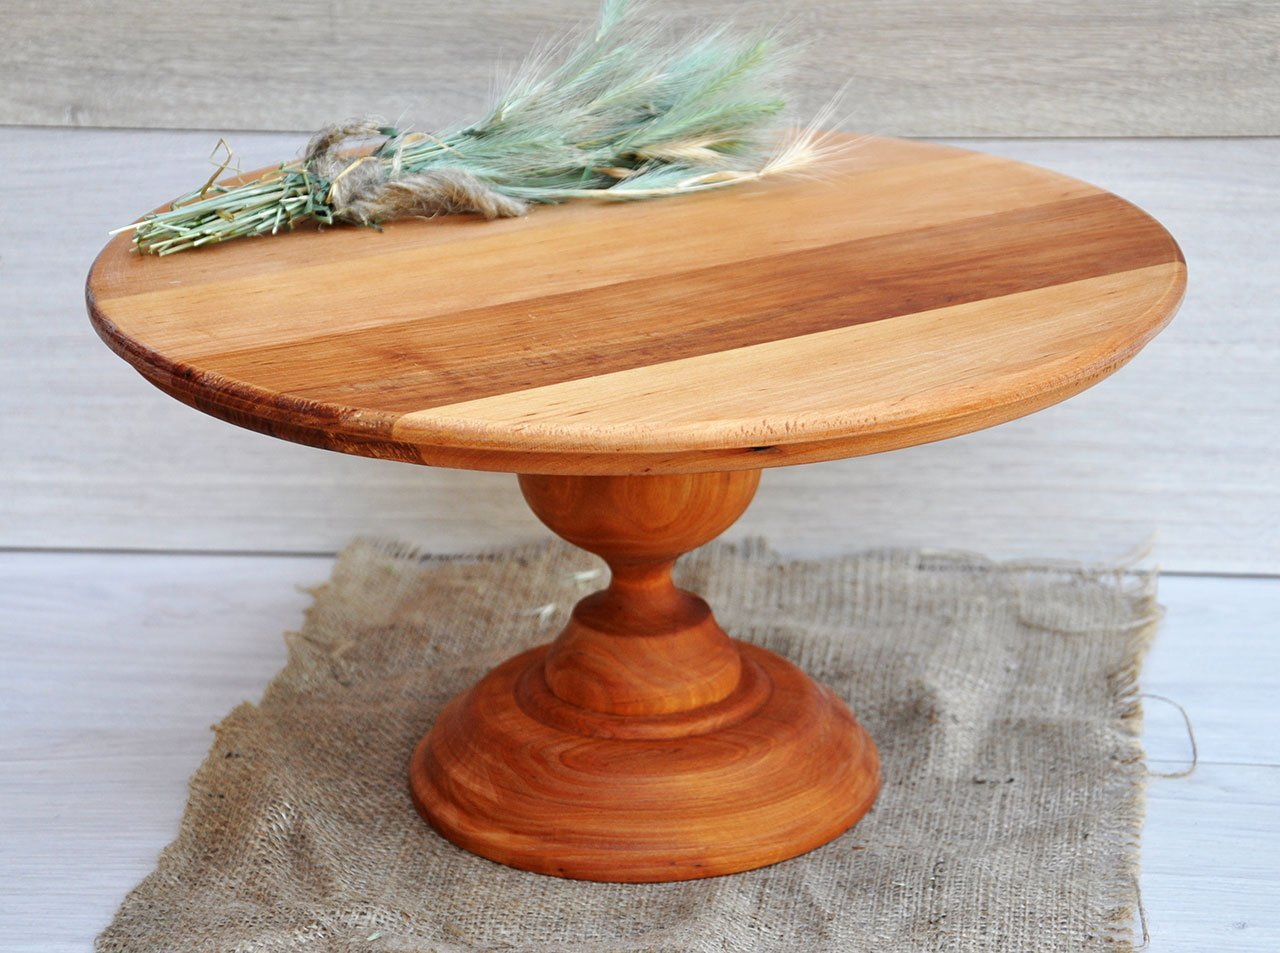 40cm Natural Wood cake stand Wood centerpieces for wedding rustic wedding centerpieces Wooden cake stands Rustic cupcake stand Rustic baby shower decorations